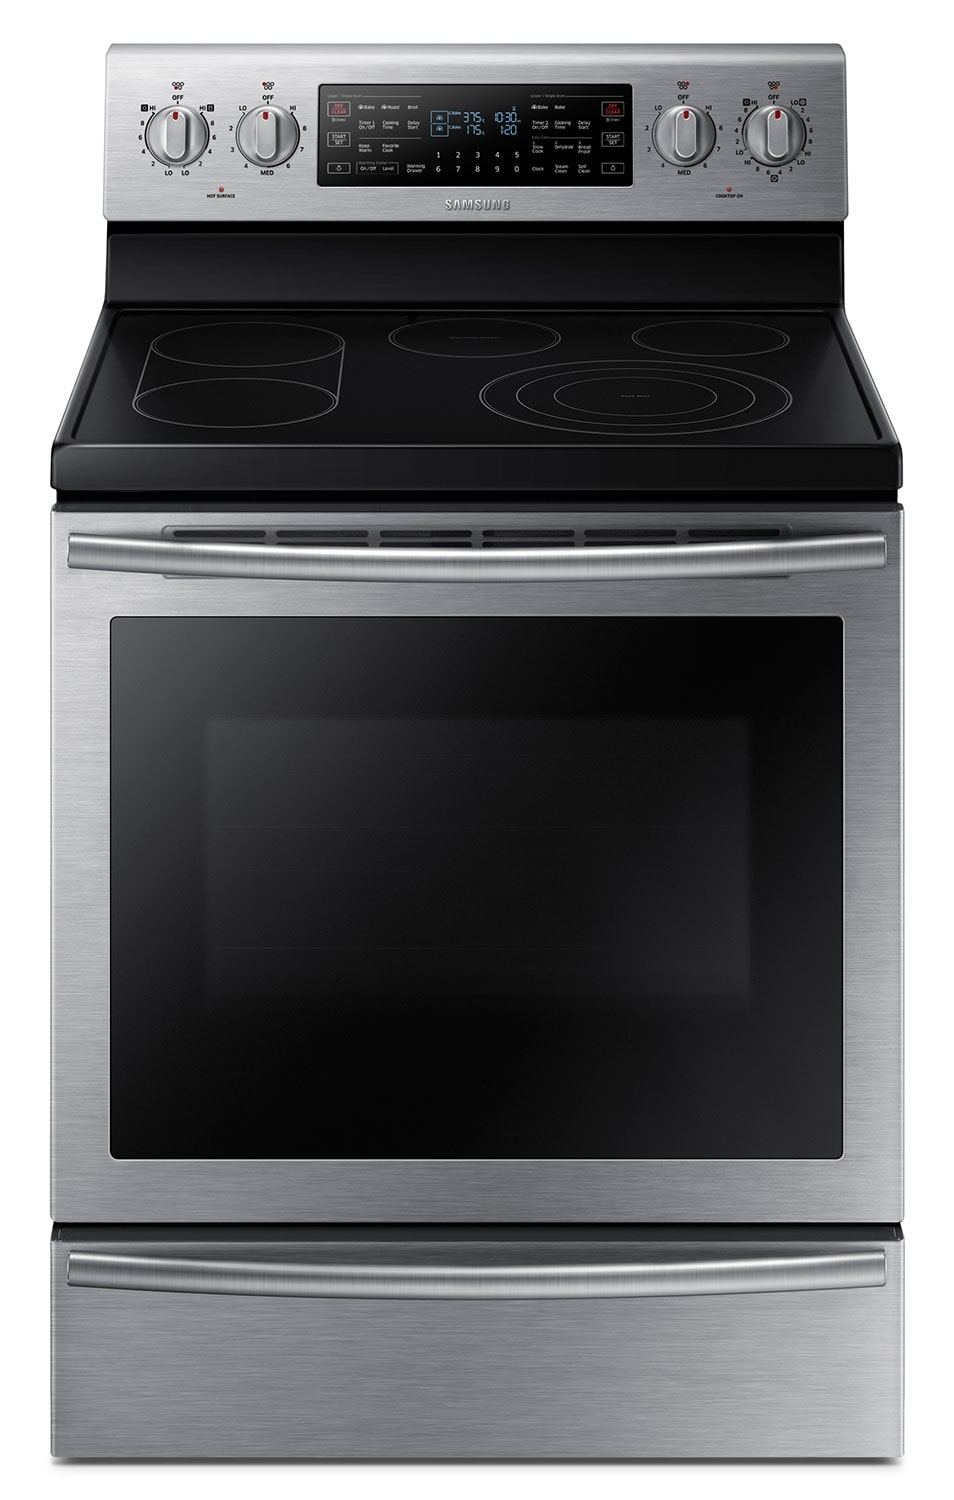 Cooking Products - Samsung Stainless Steel Electric Convection Range (5.9 Cu. Ft.) - NE59J7750WS/AC